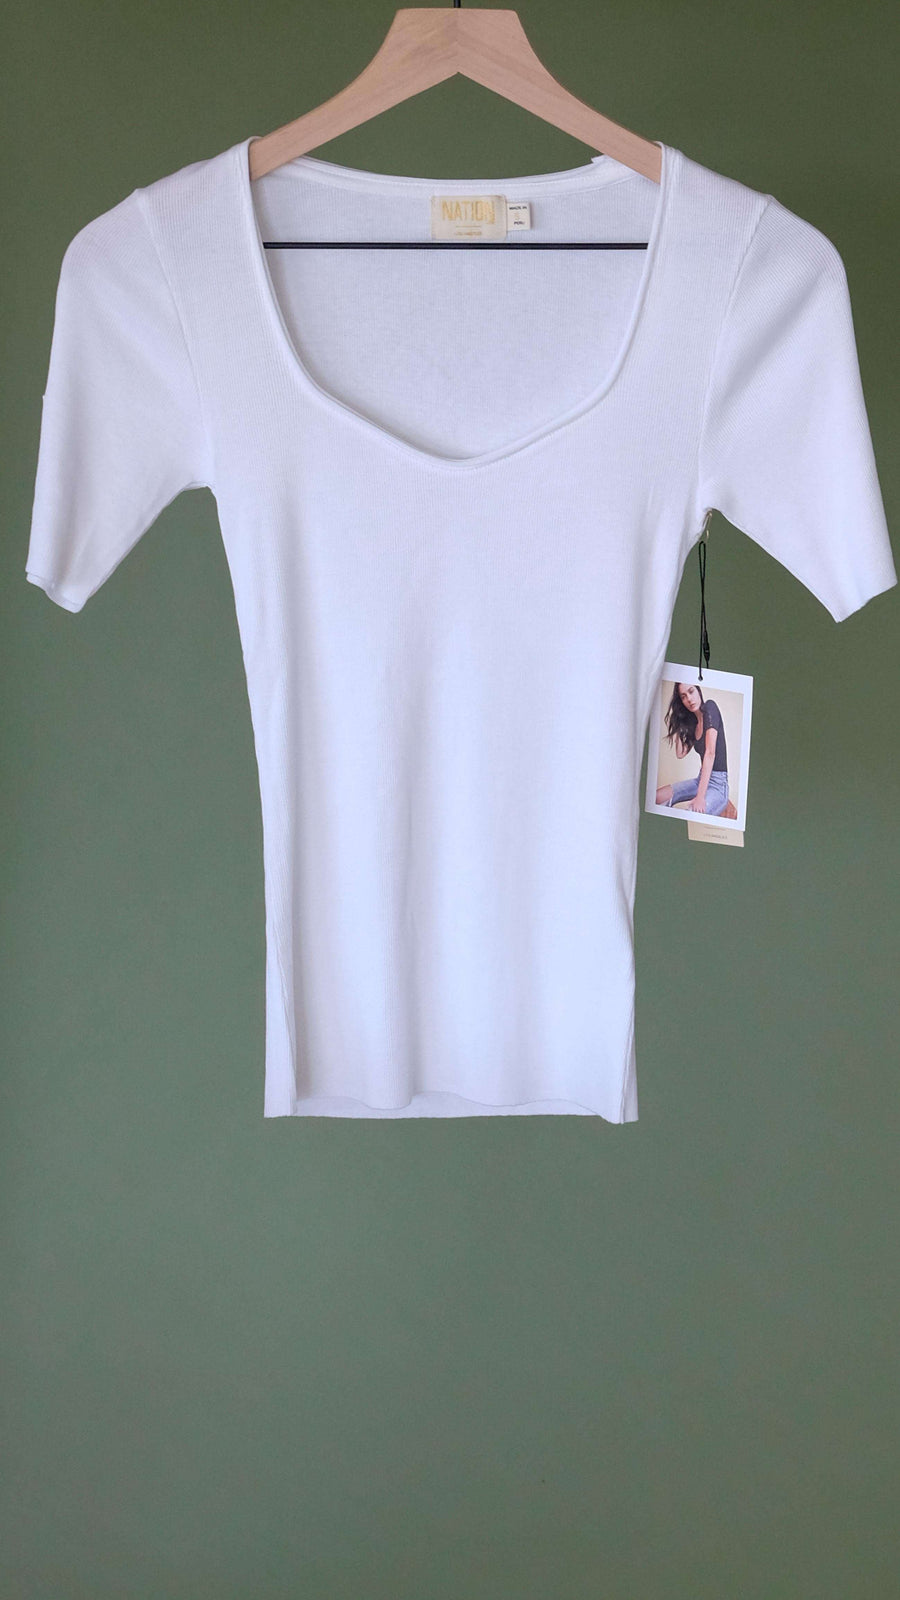 Eris Button Sleeve Sweetheart Tee in White by Nation LTD